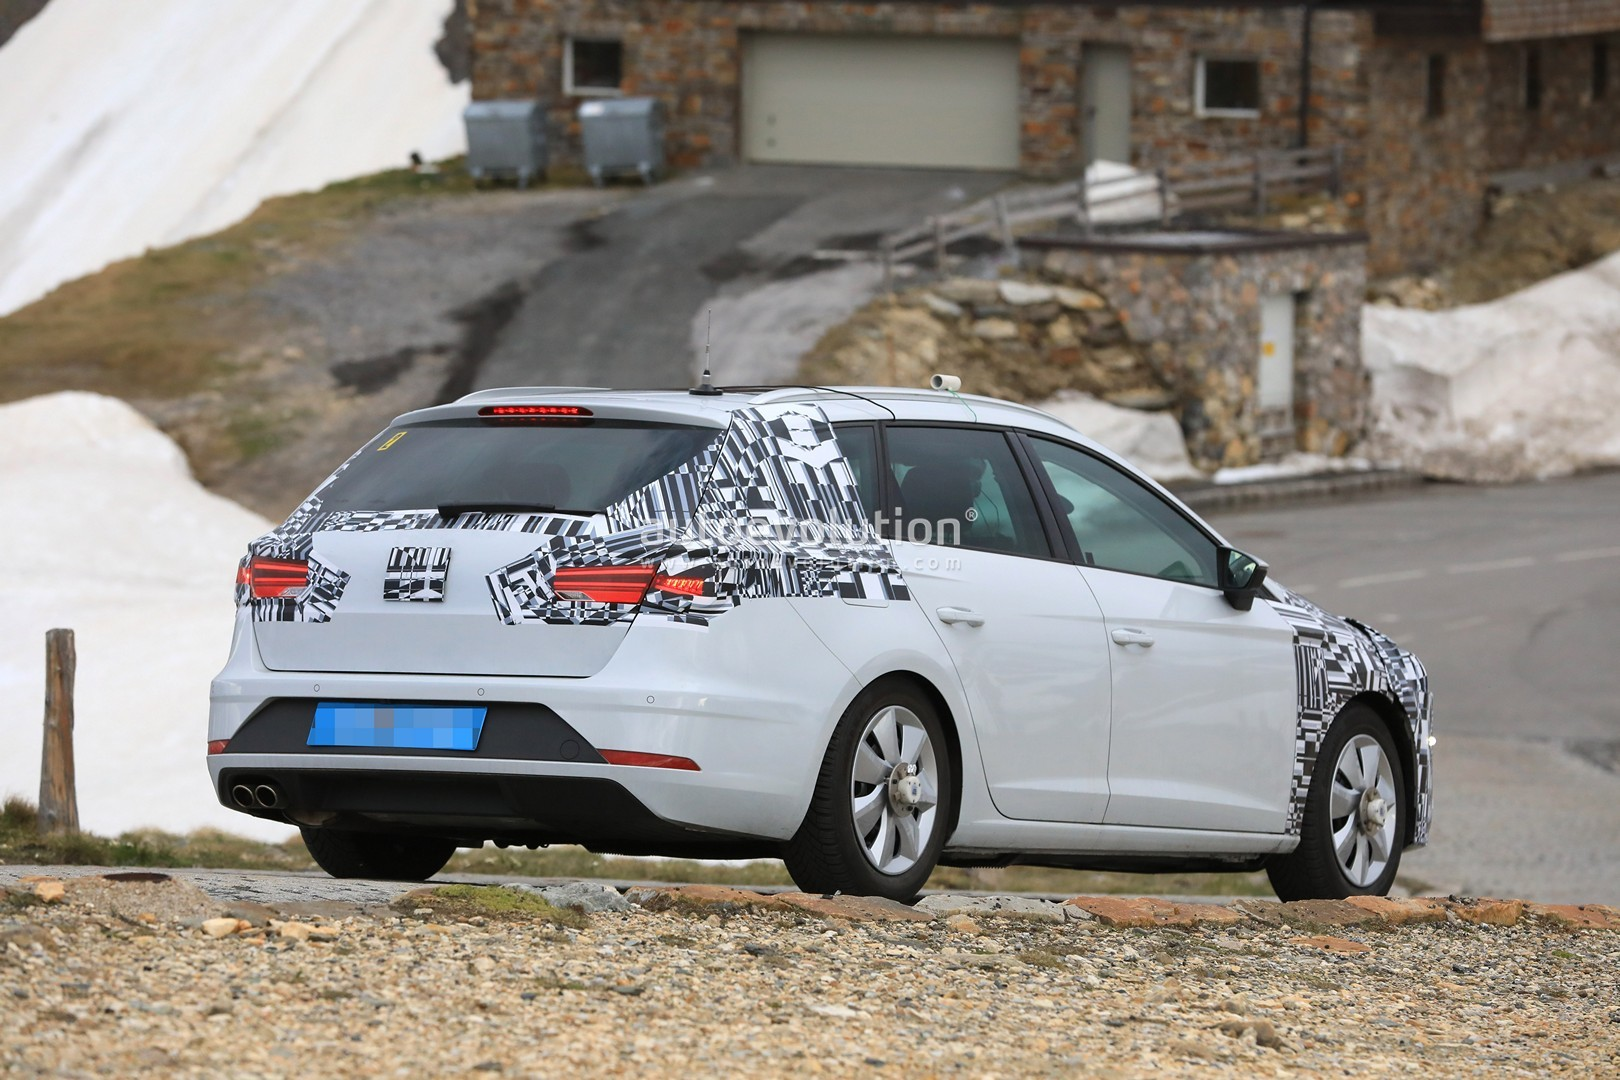 spyshots 2019 seat leon shows up for the first time has new front design autoevolution. Black Bedroom Furniture Sets. Home Design Ideas